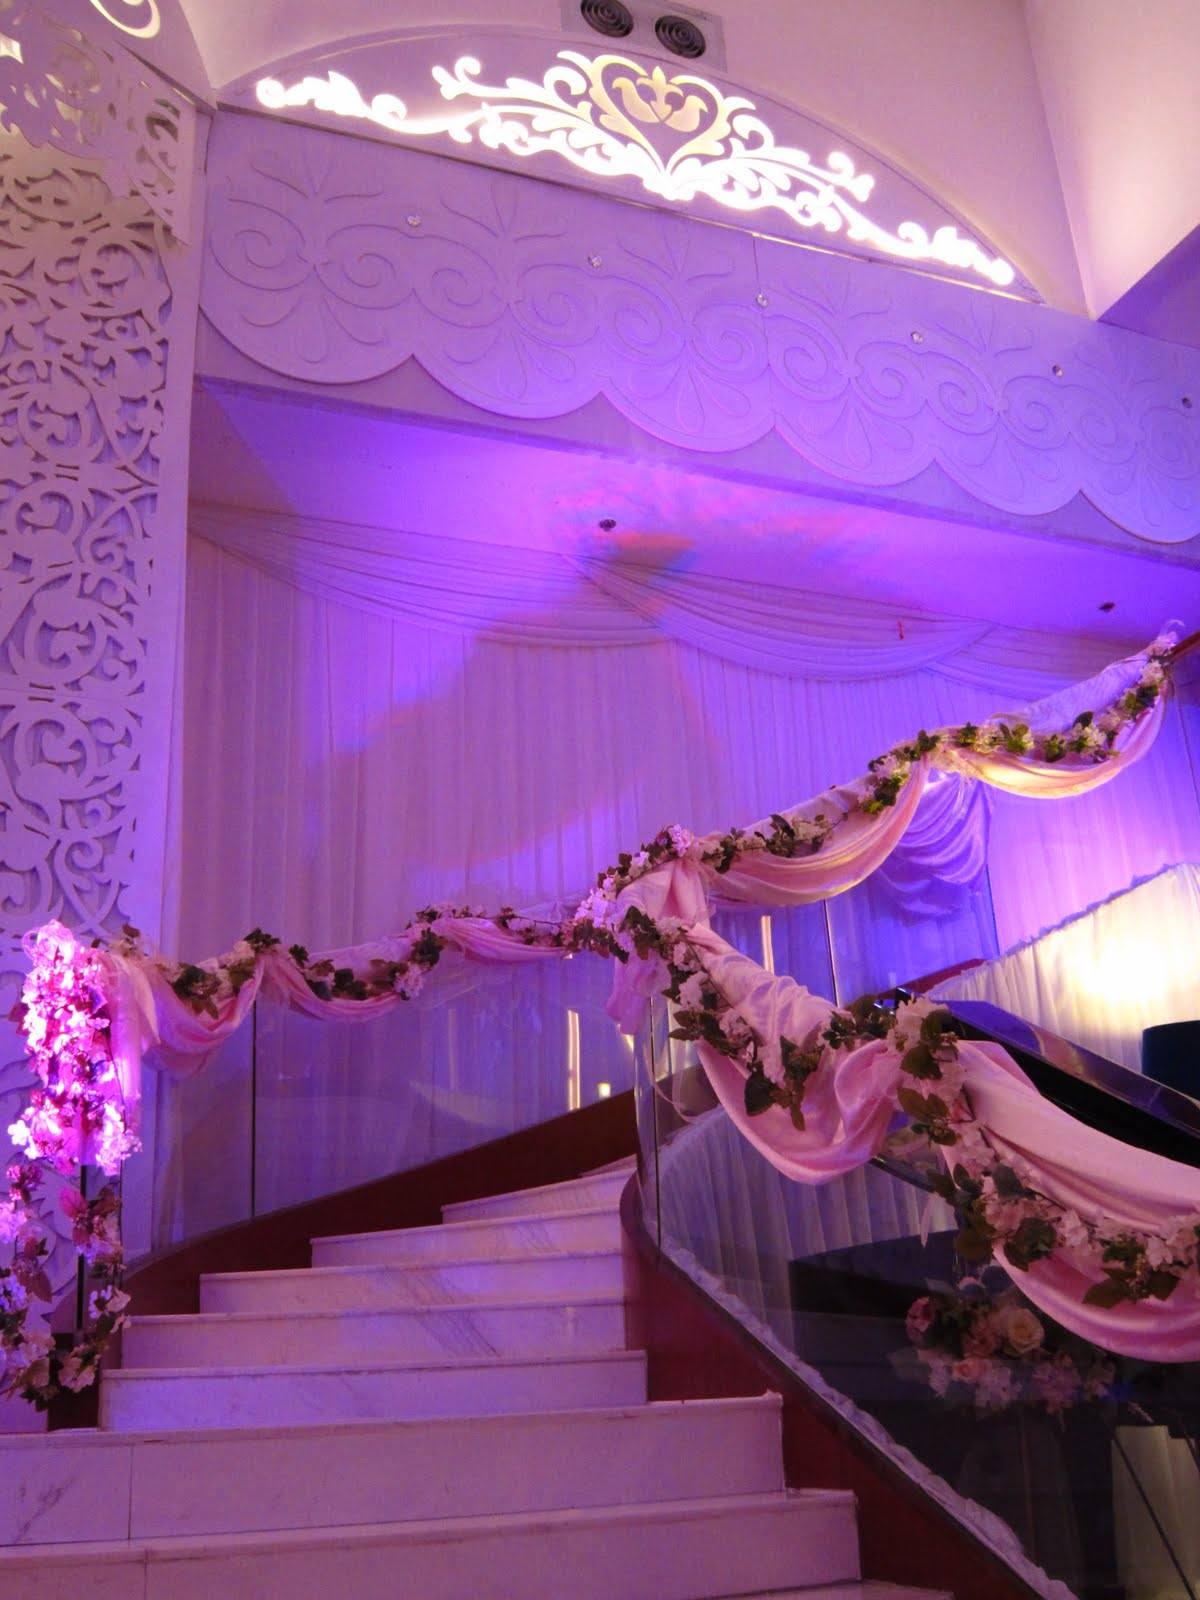 Low ceiling wedding decorations wedding decorators uk romantic low ceiling wedding decorations wedding reception decoration ideas for low ceilings junglespirit Image collections